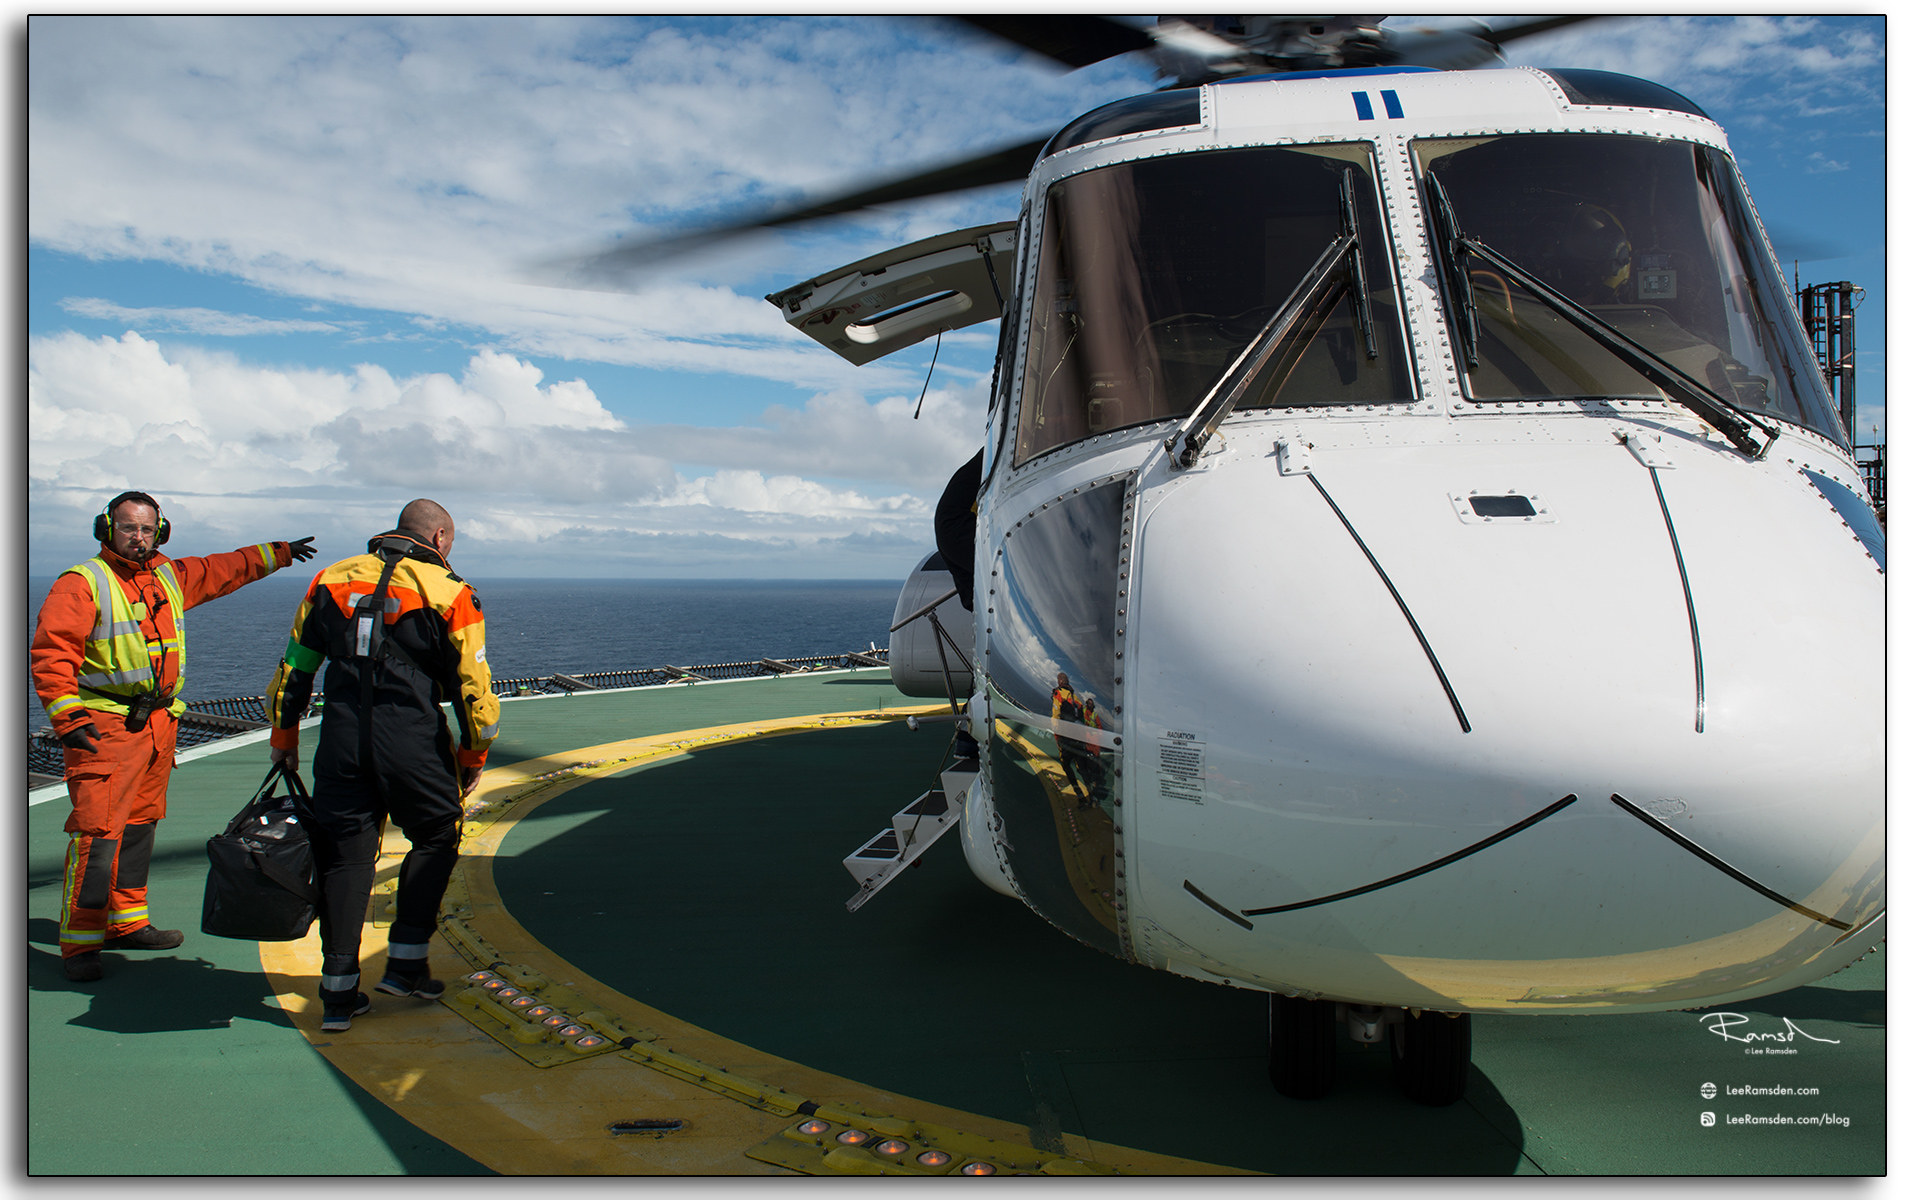 Sikorsky, S92, helicopter, aviation, flight, oil and gas industry, offshore, north sea, Aberdeen, taxi 14